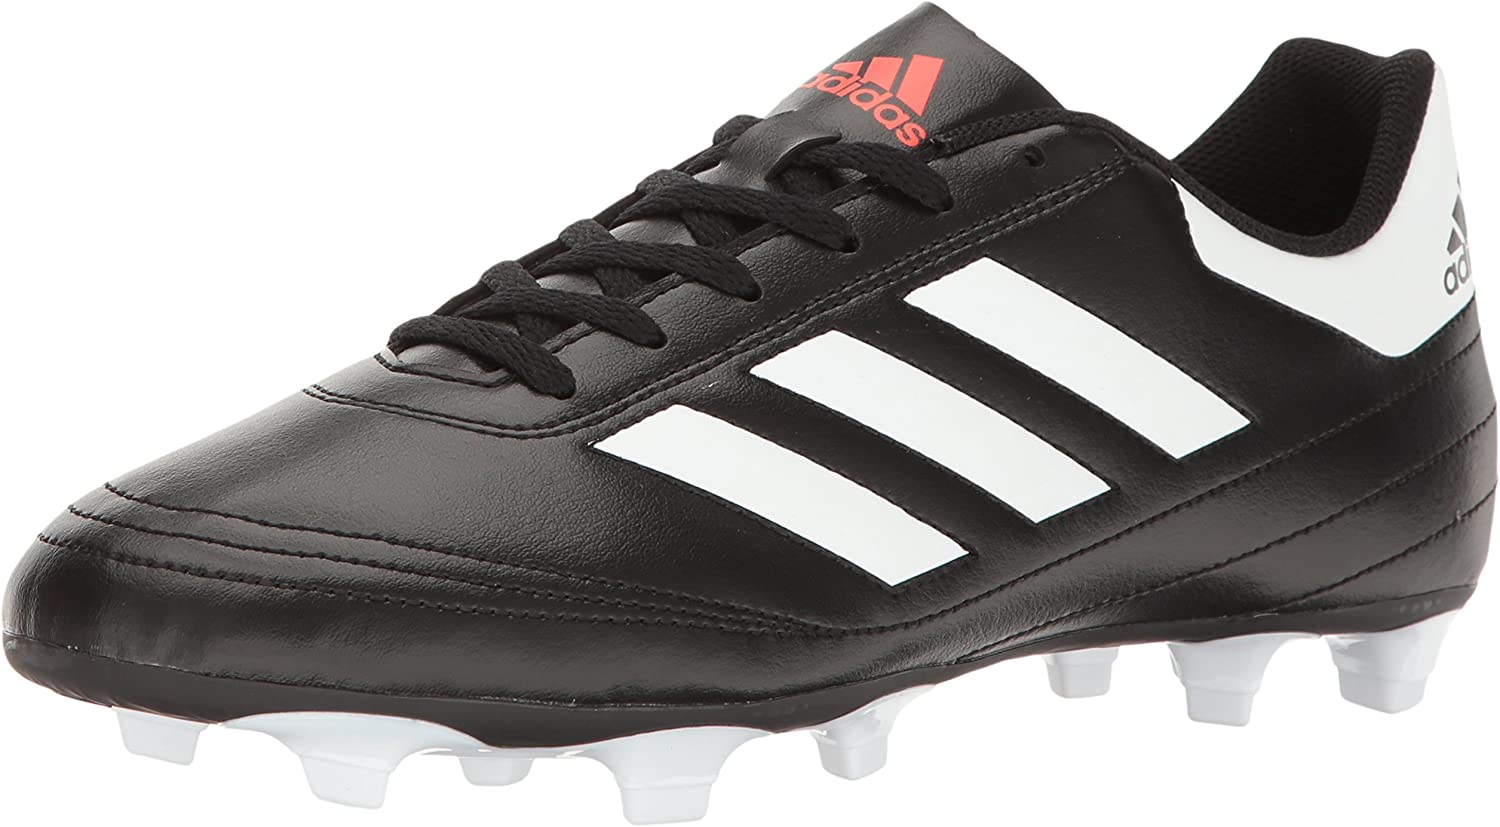 Adidas Men's Goletto VI Firm Ground Soccer shoes, Black White Solar red, 8.5 M US